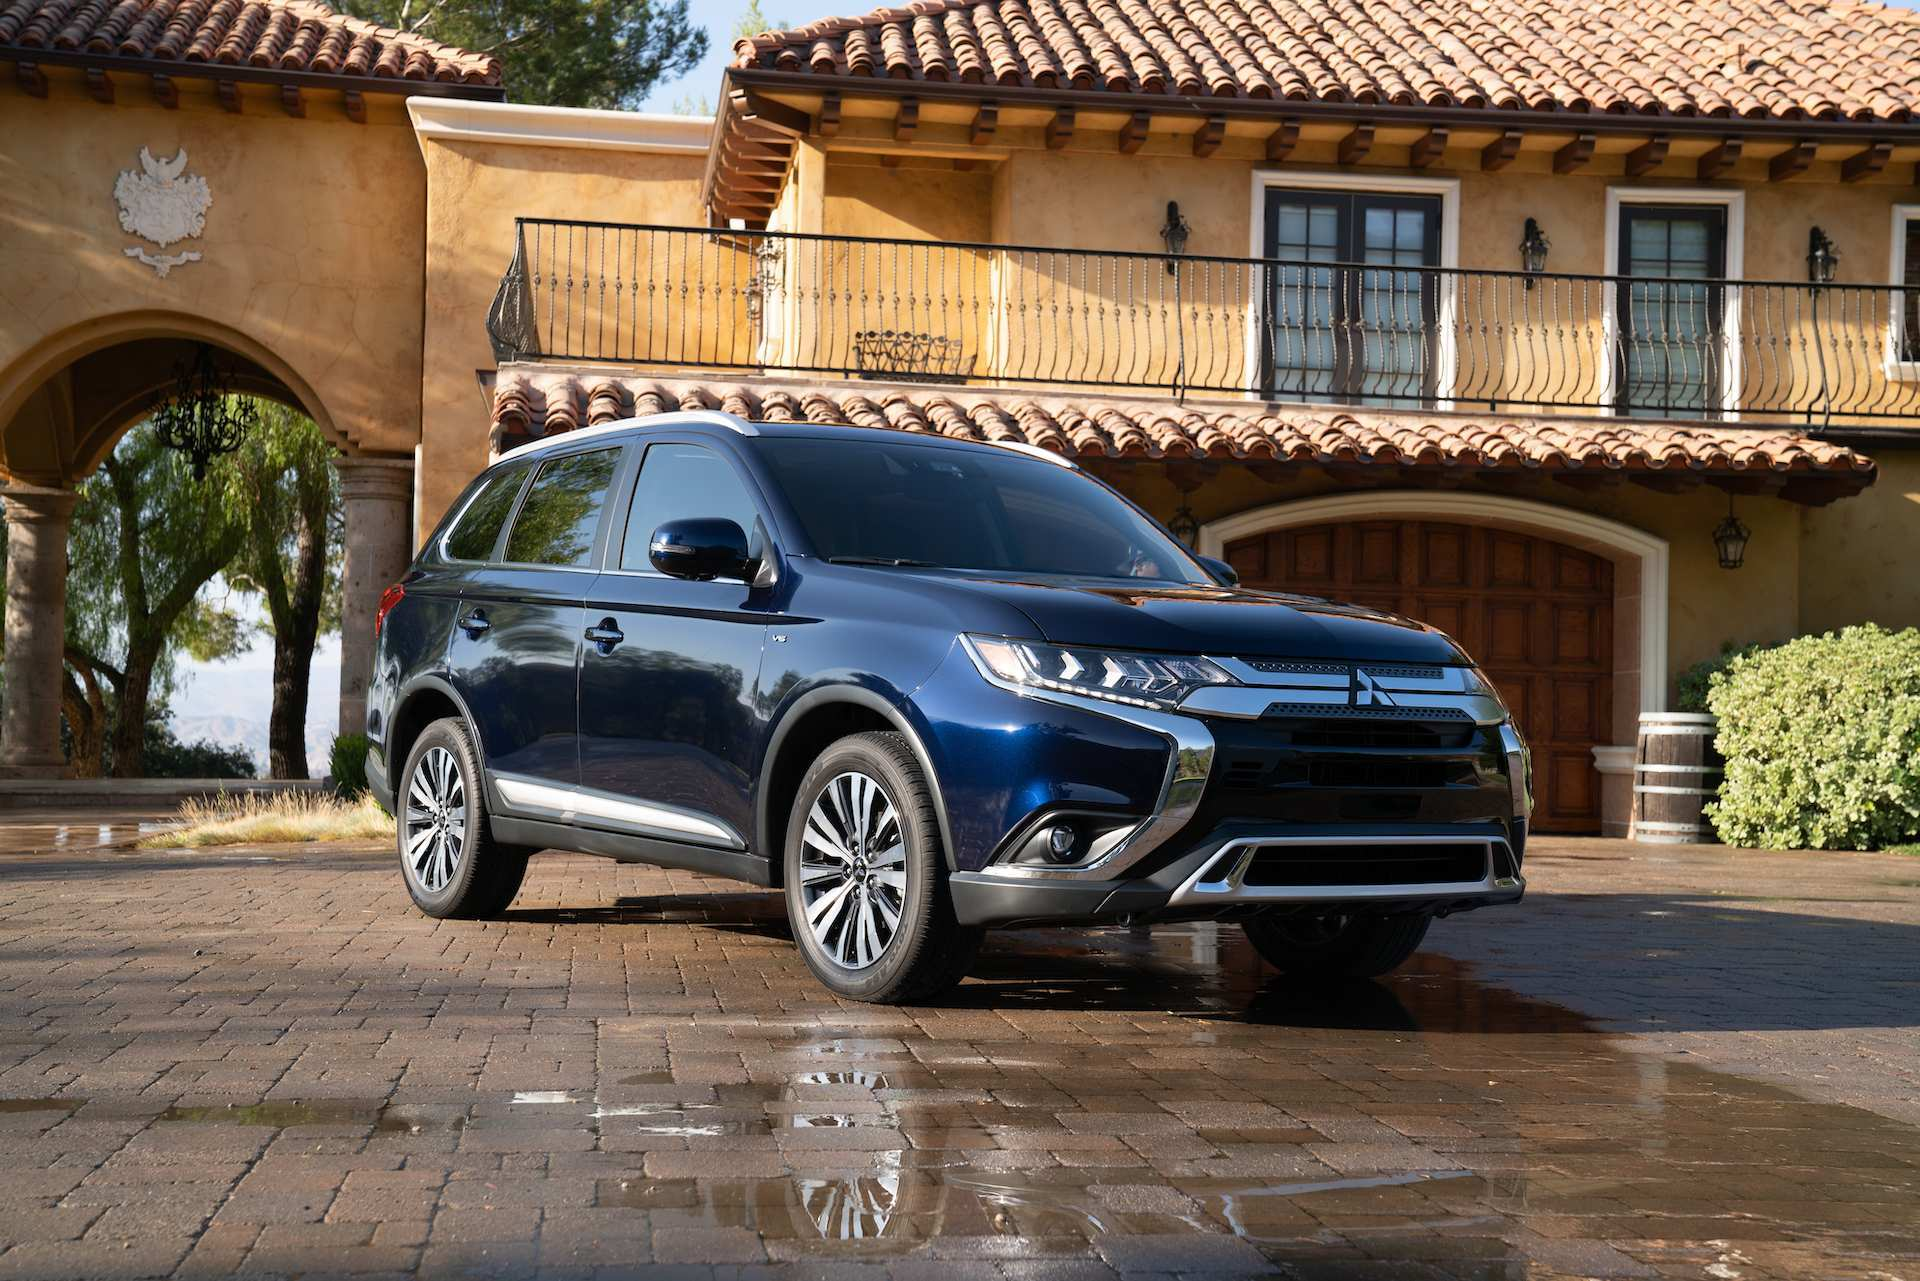 68 New Mitsubishi Outlander Plug In Hybrid 2020 Release Date And Concept